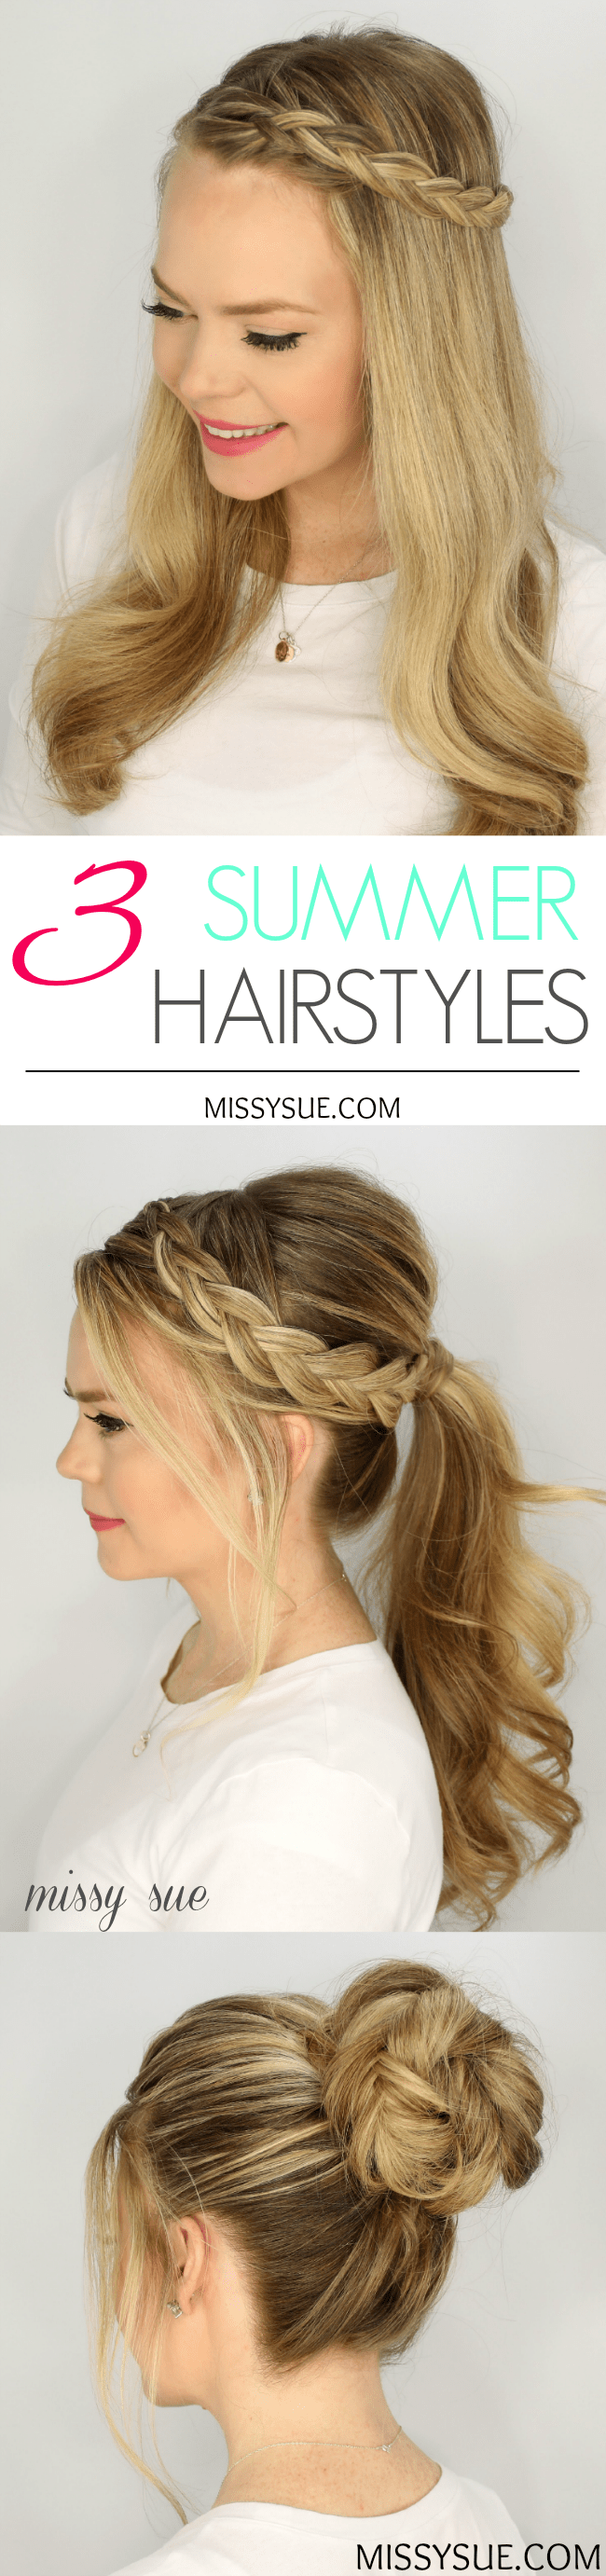 three-summer-hairstyles-missysueblog